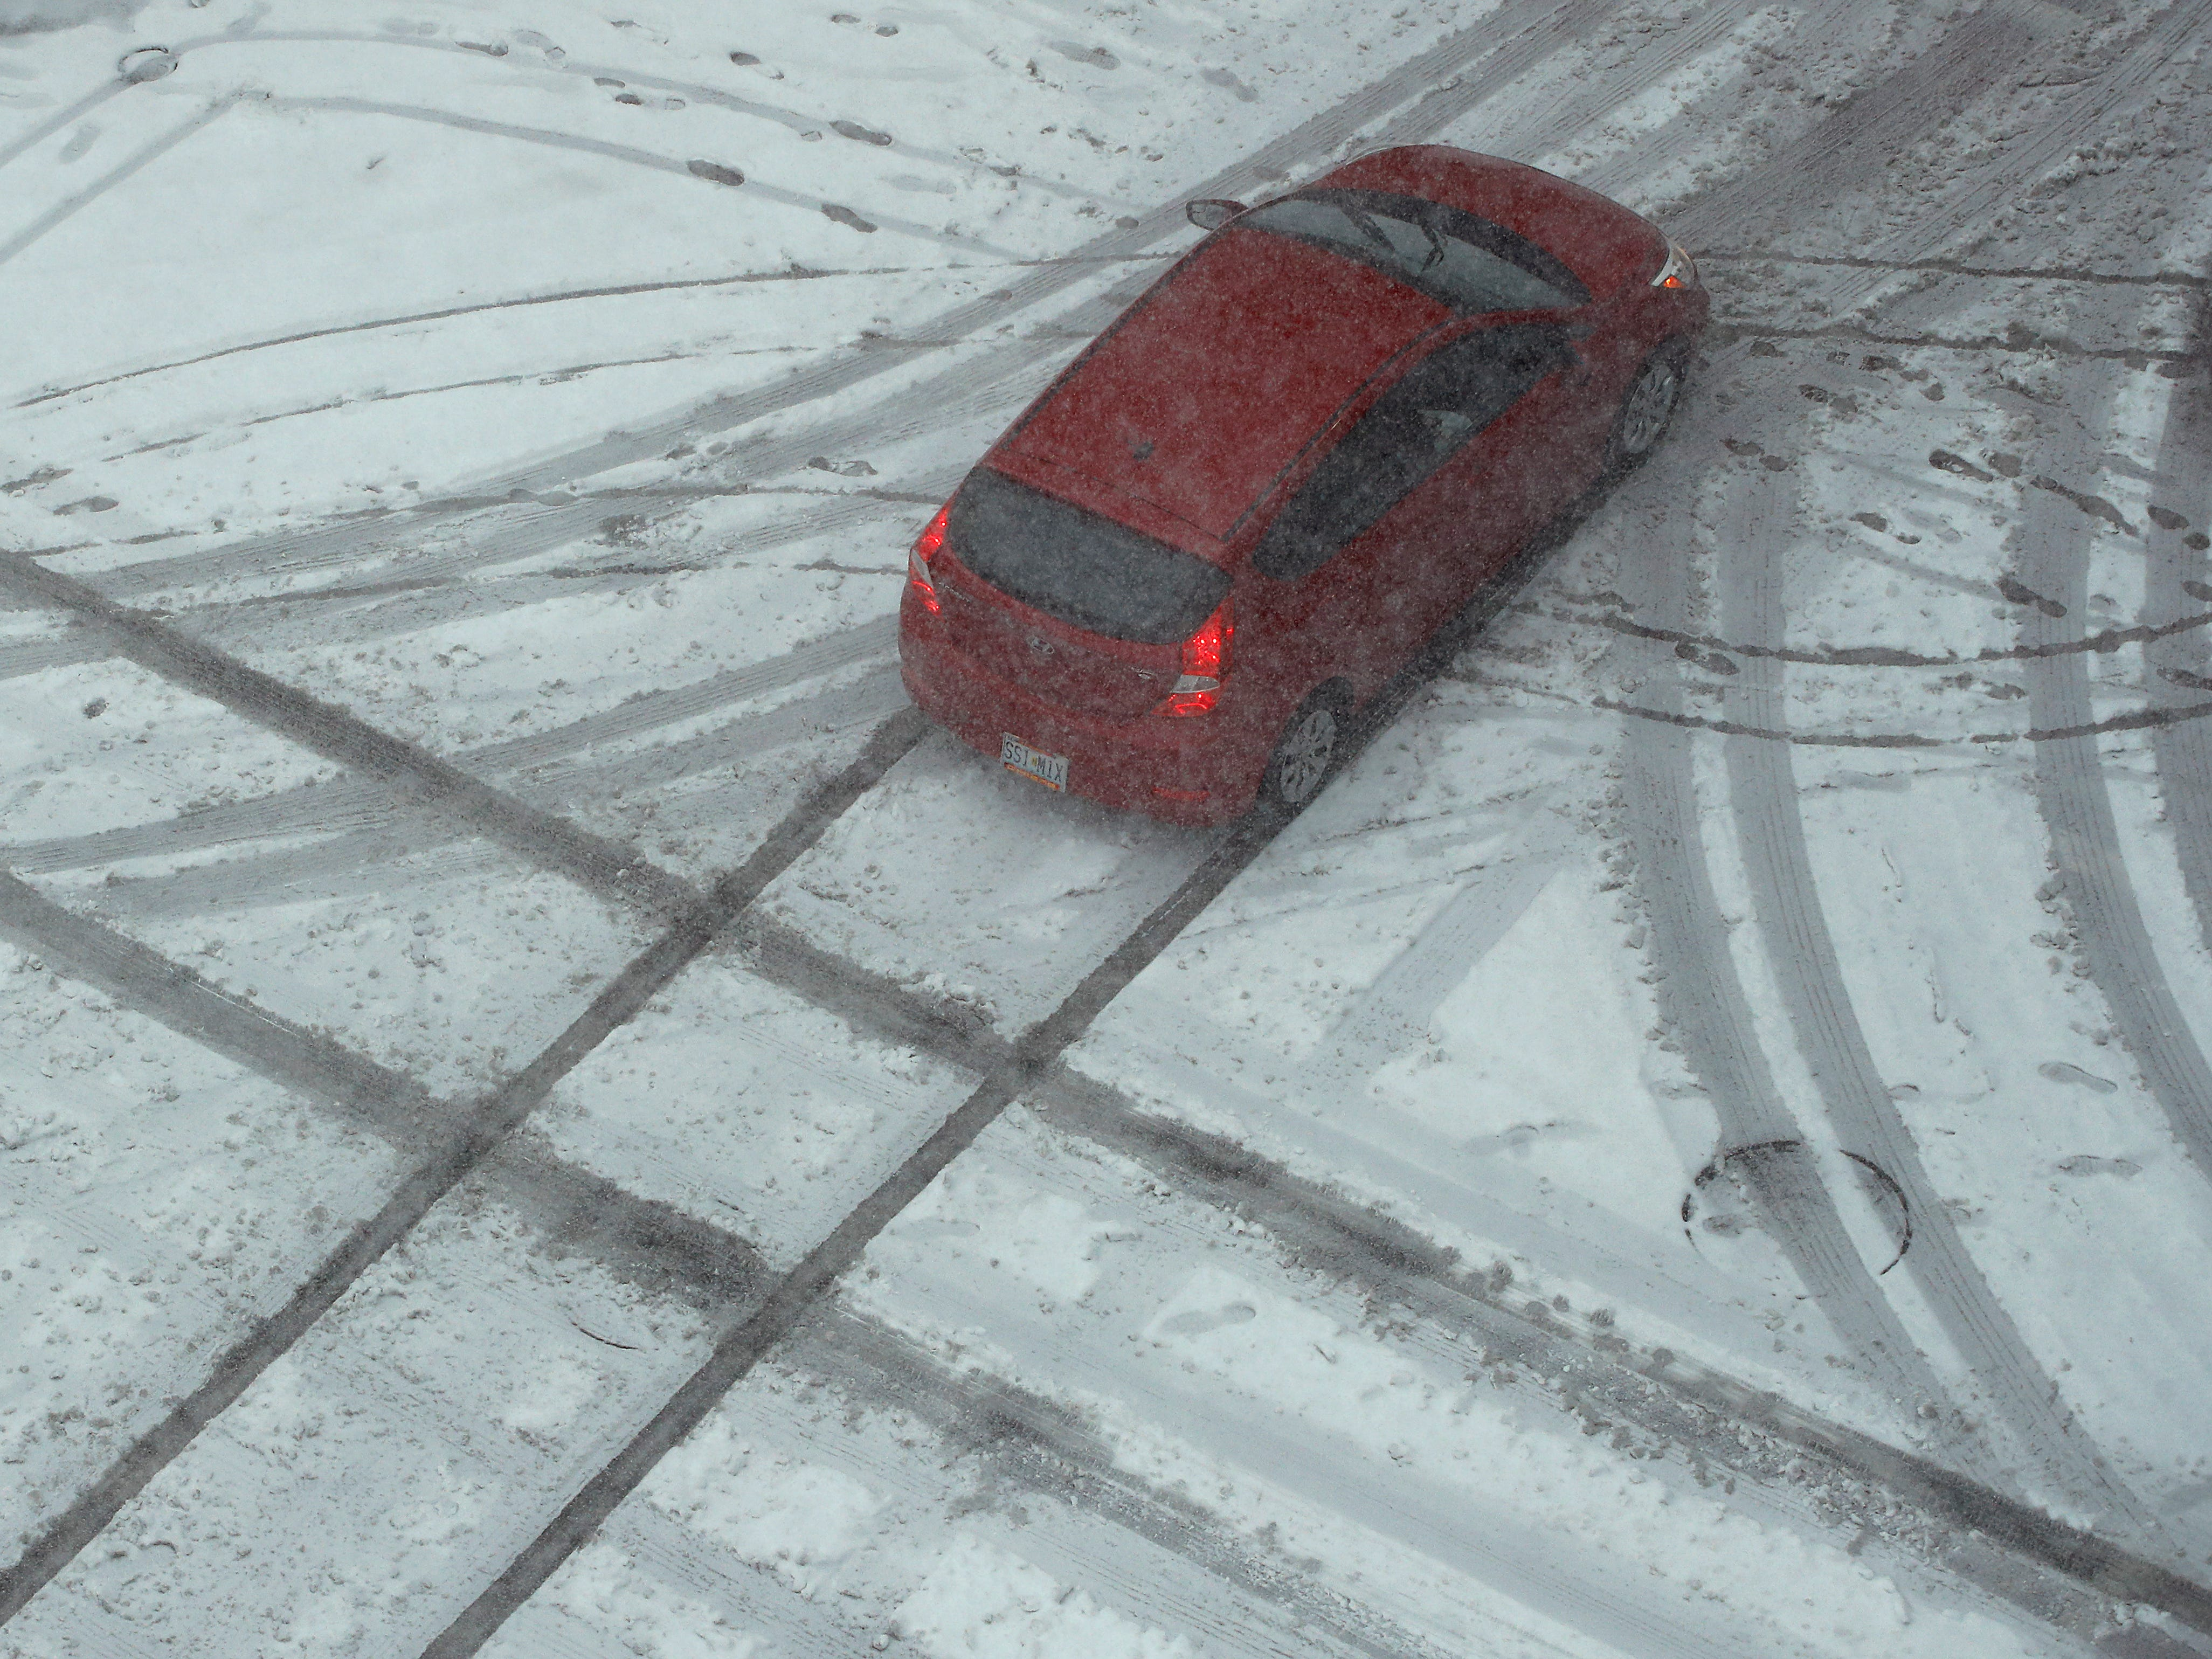 A motorist drives though a slick intersection as snow falls on Nov. 25, 2018, in downtown Kansas City, Mo.